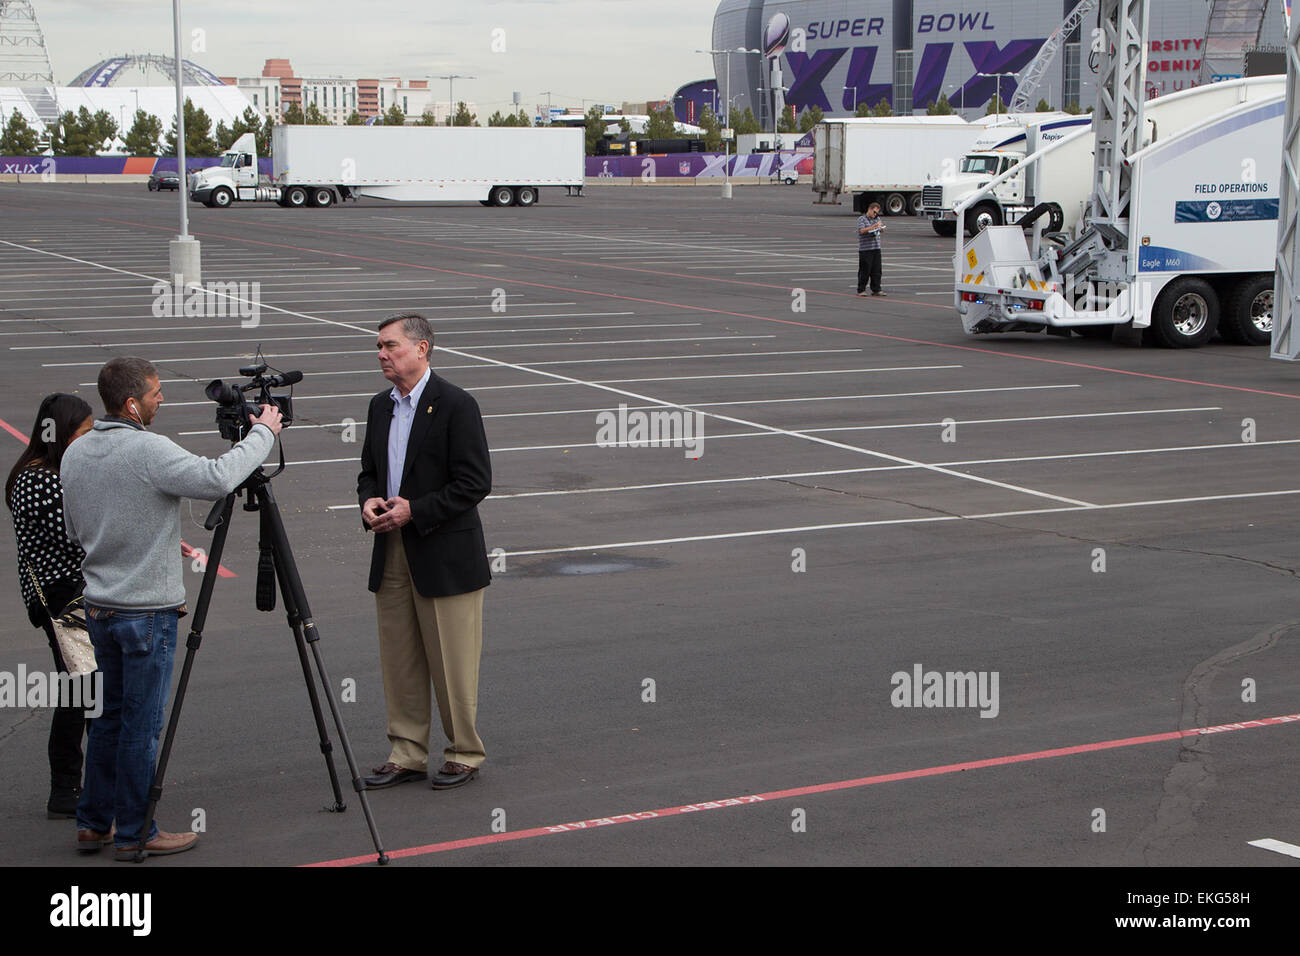 012615:CBP background support during Super Bowl XLIX.  CBP Commissioner Kerlikowske at the CBP Non Intrusion Inspection - Stock Image